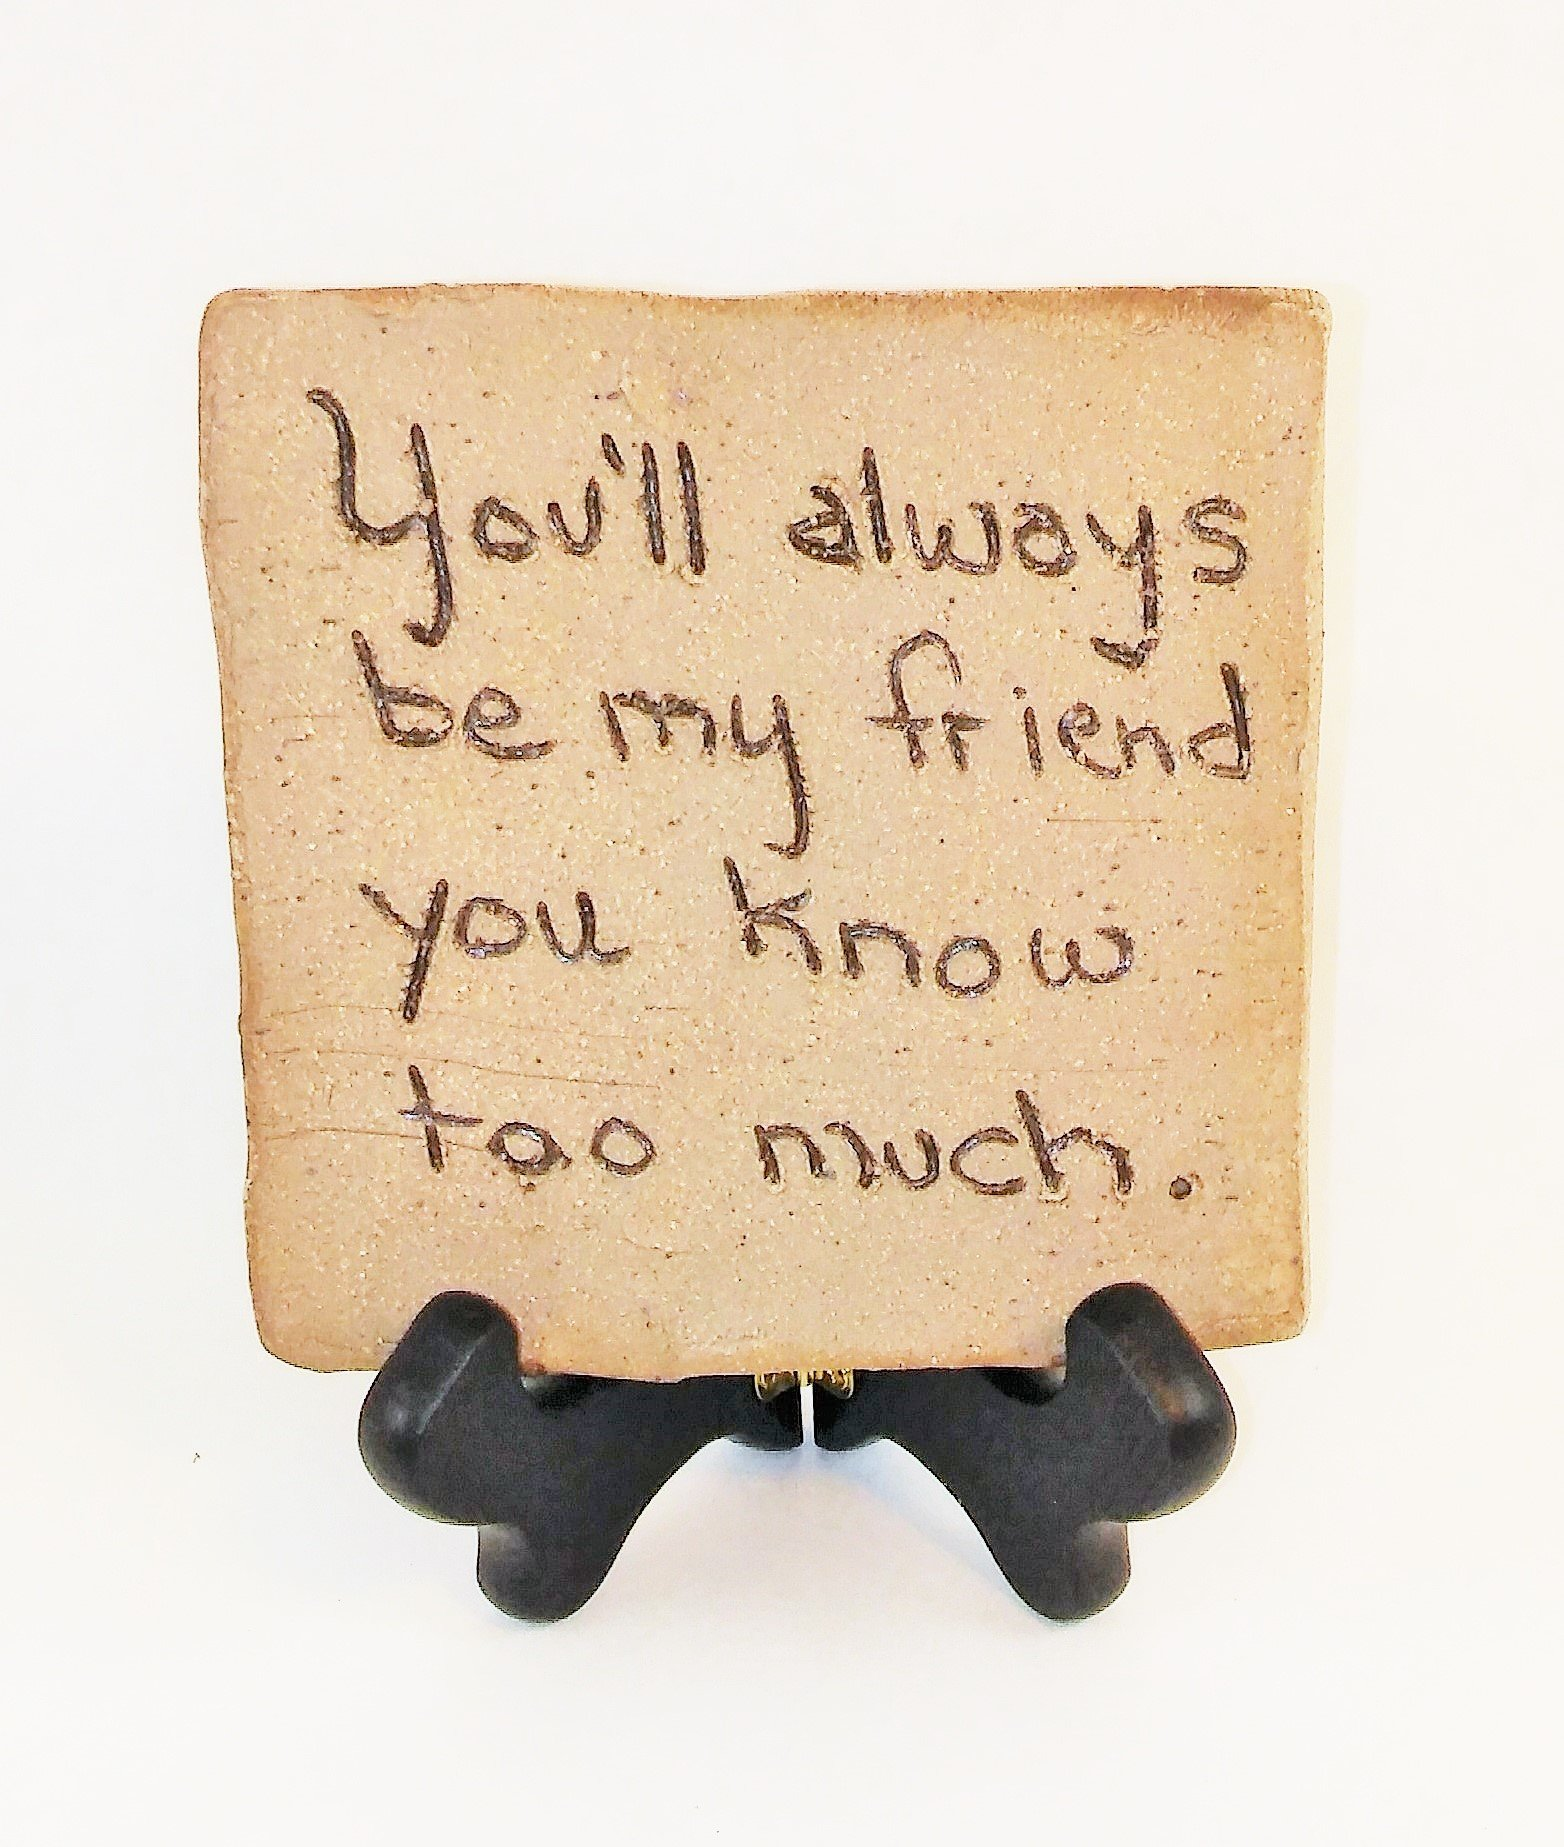 "Aunt Chris' Pottery - Desk Top - Rustic Clay Sign - With Unique Biblical Words Or Quotes ""You'll always be my friend you know too much."" - Sits On Wood Easel"